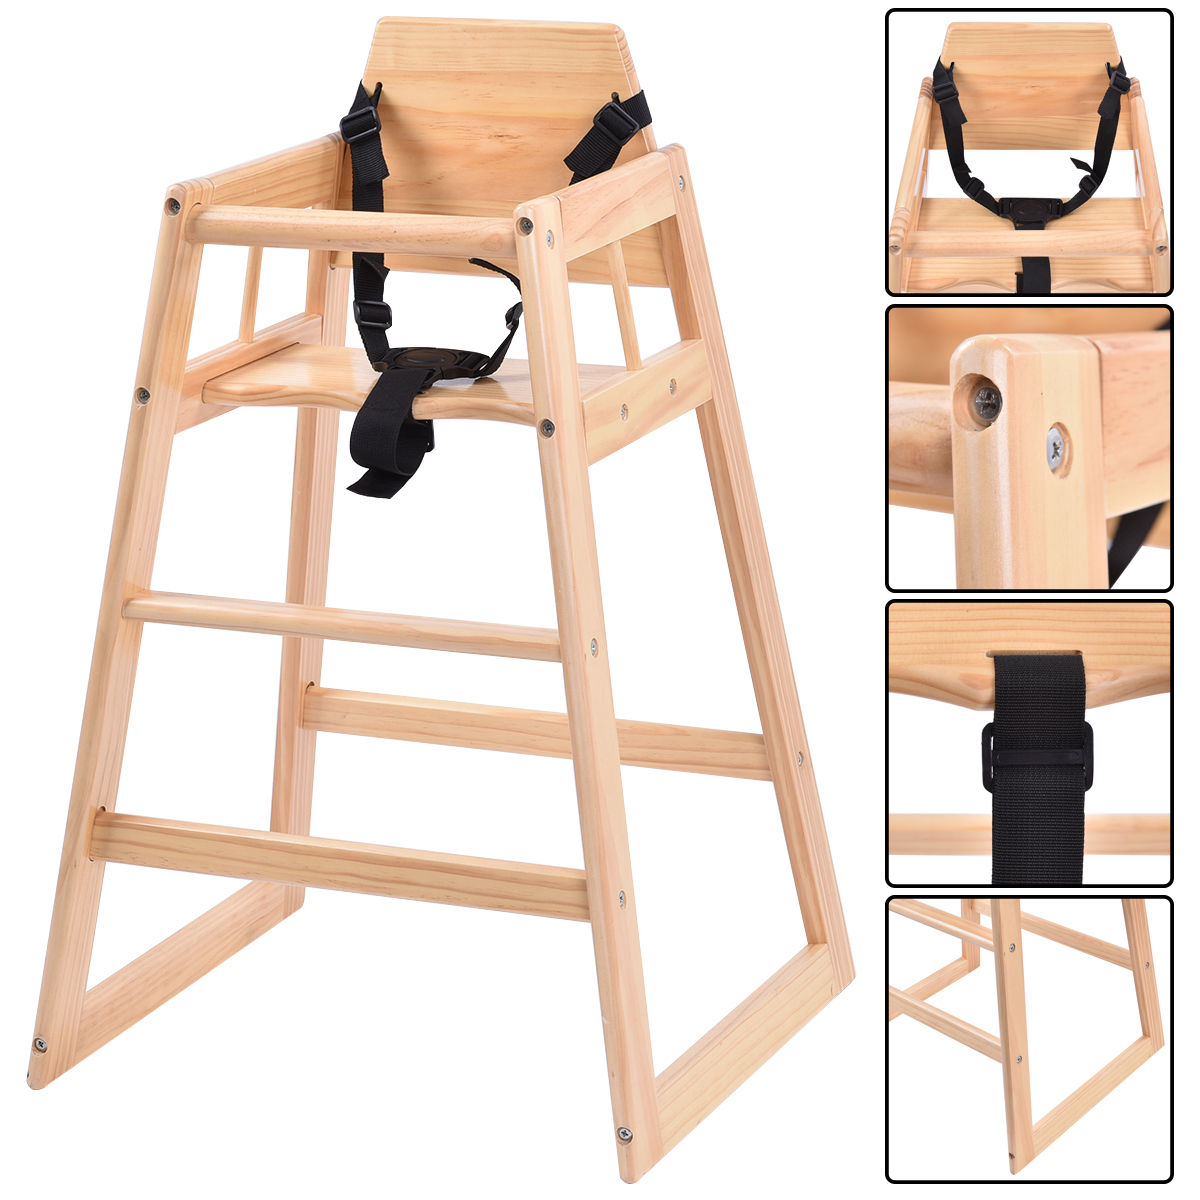 Costway Baby High Chair Wooden Stool Infant Feeding Children Toddler Restaurant Natural